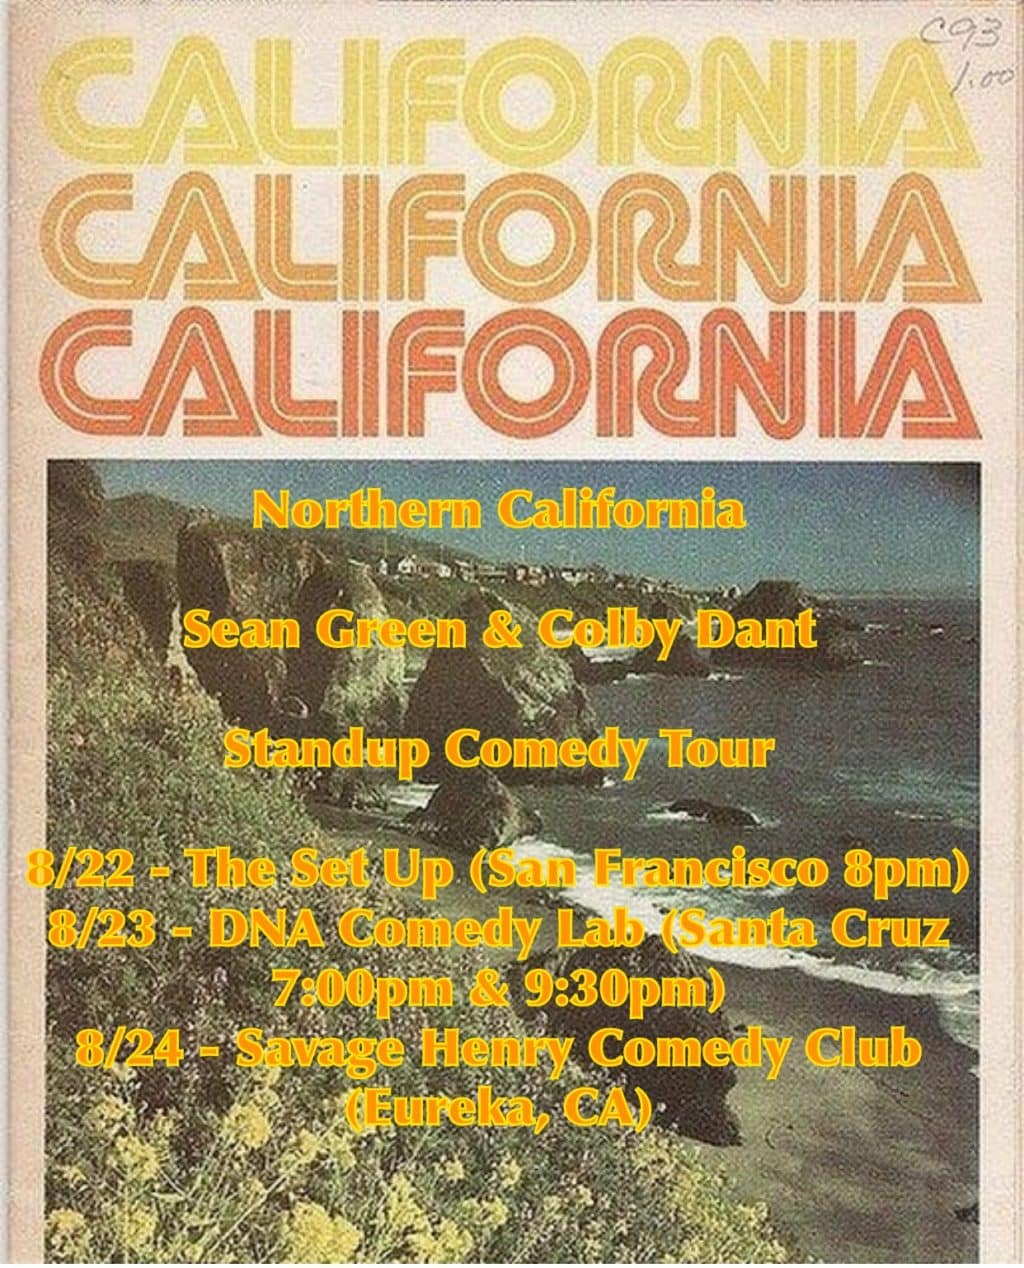 sean green and colby dant comedy tour